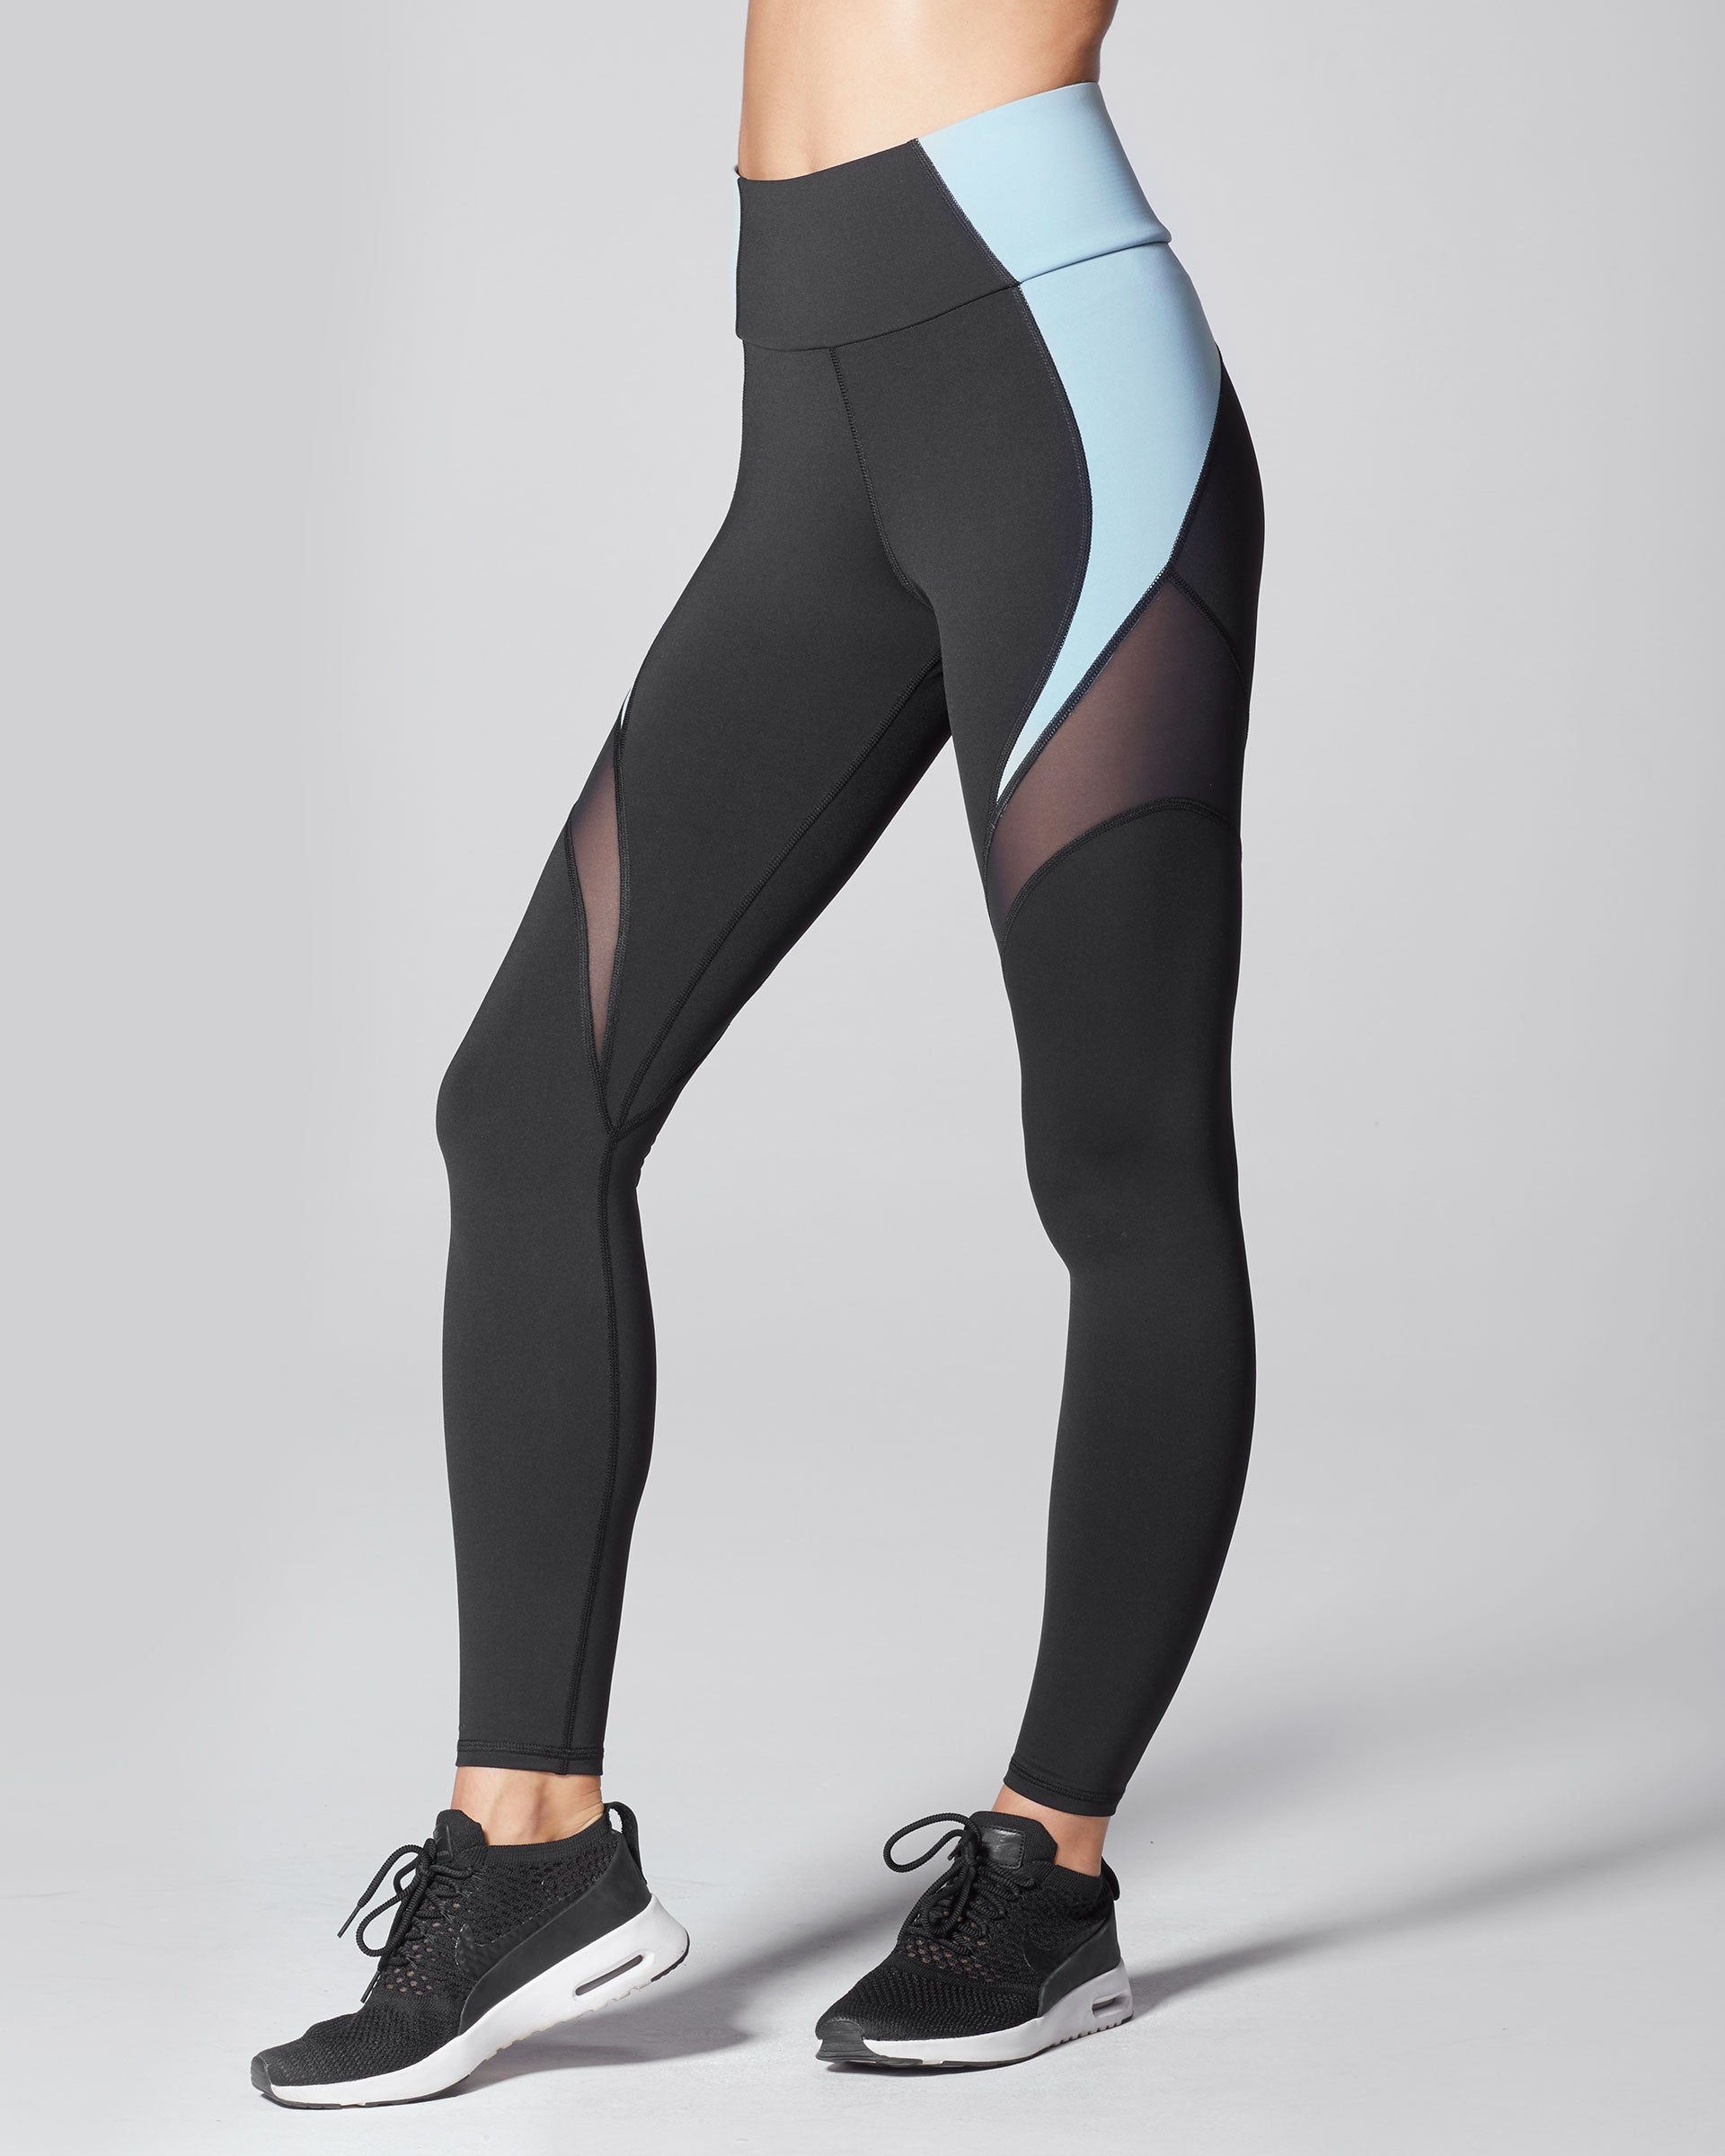 glow-high-waisted-legging-black-sky